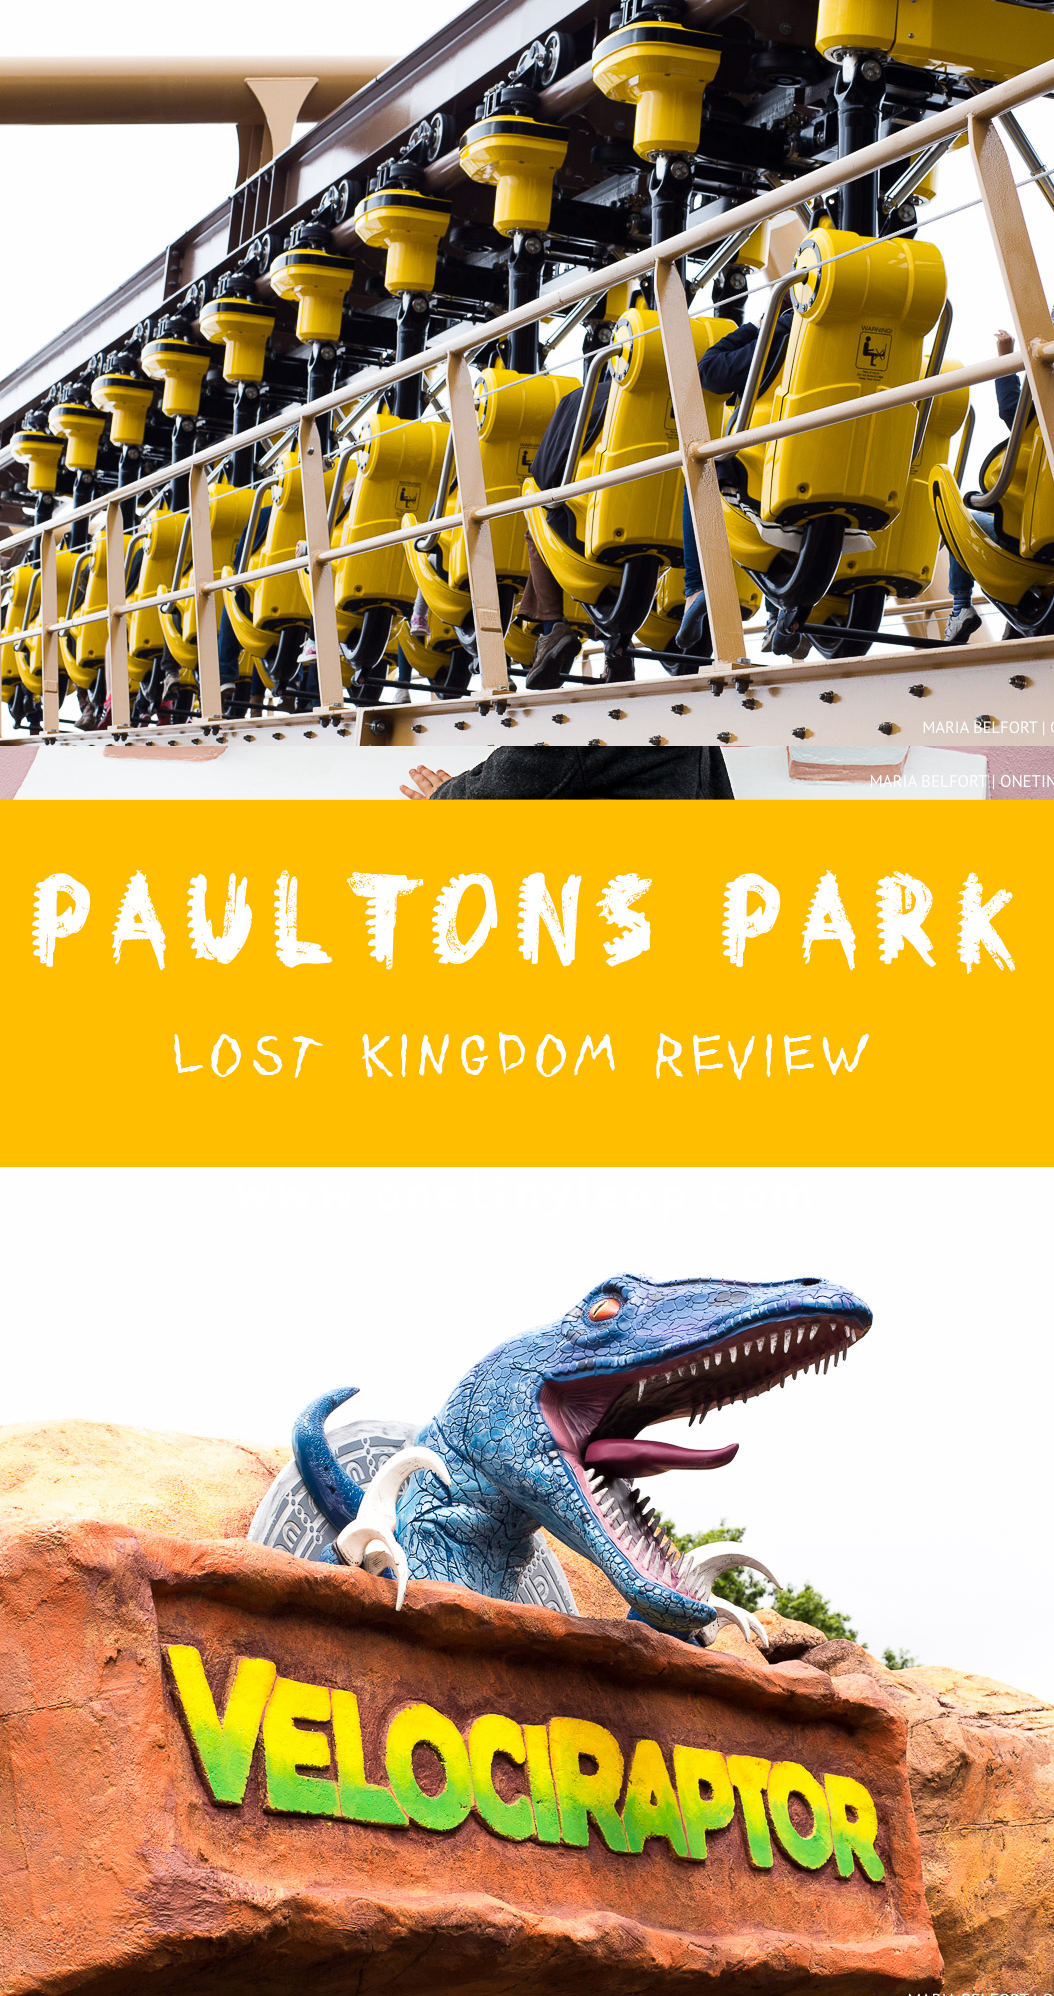 Paultons Theme Park Review